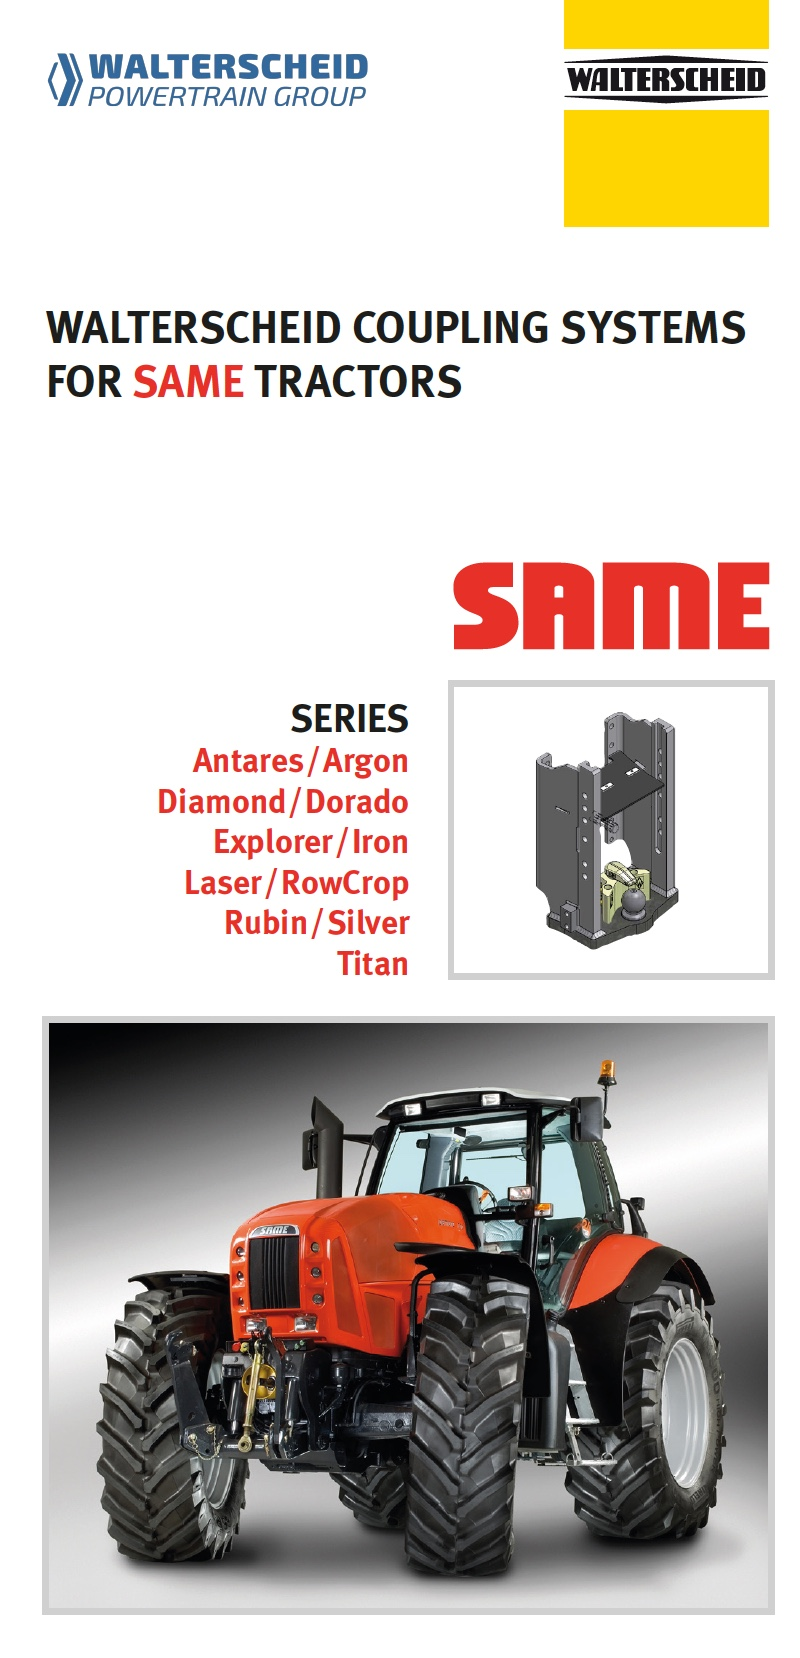 Coupling systems for SAME tractors